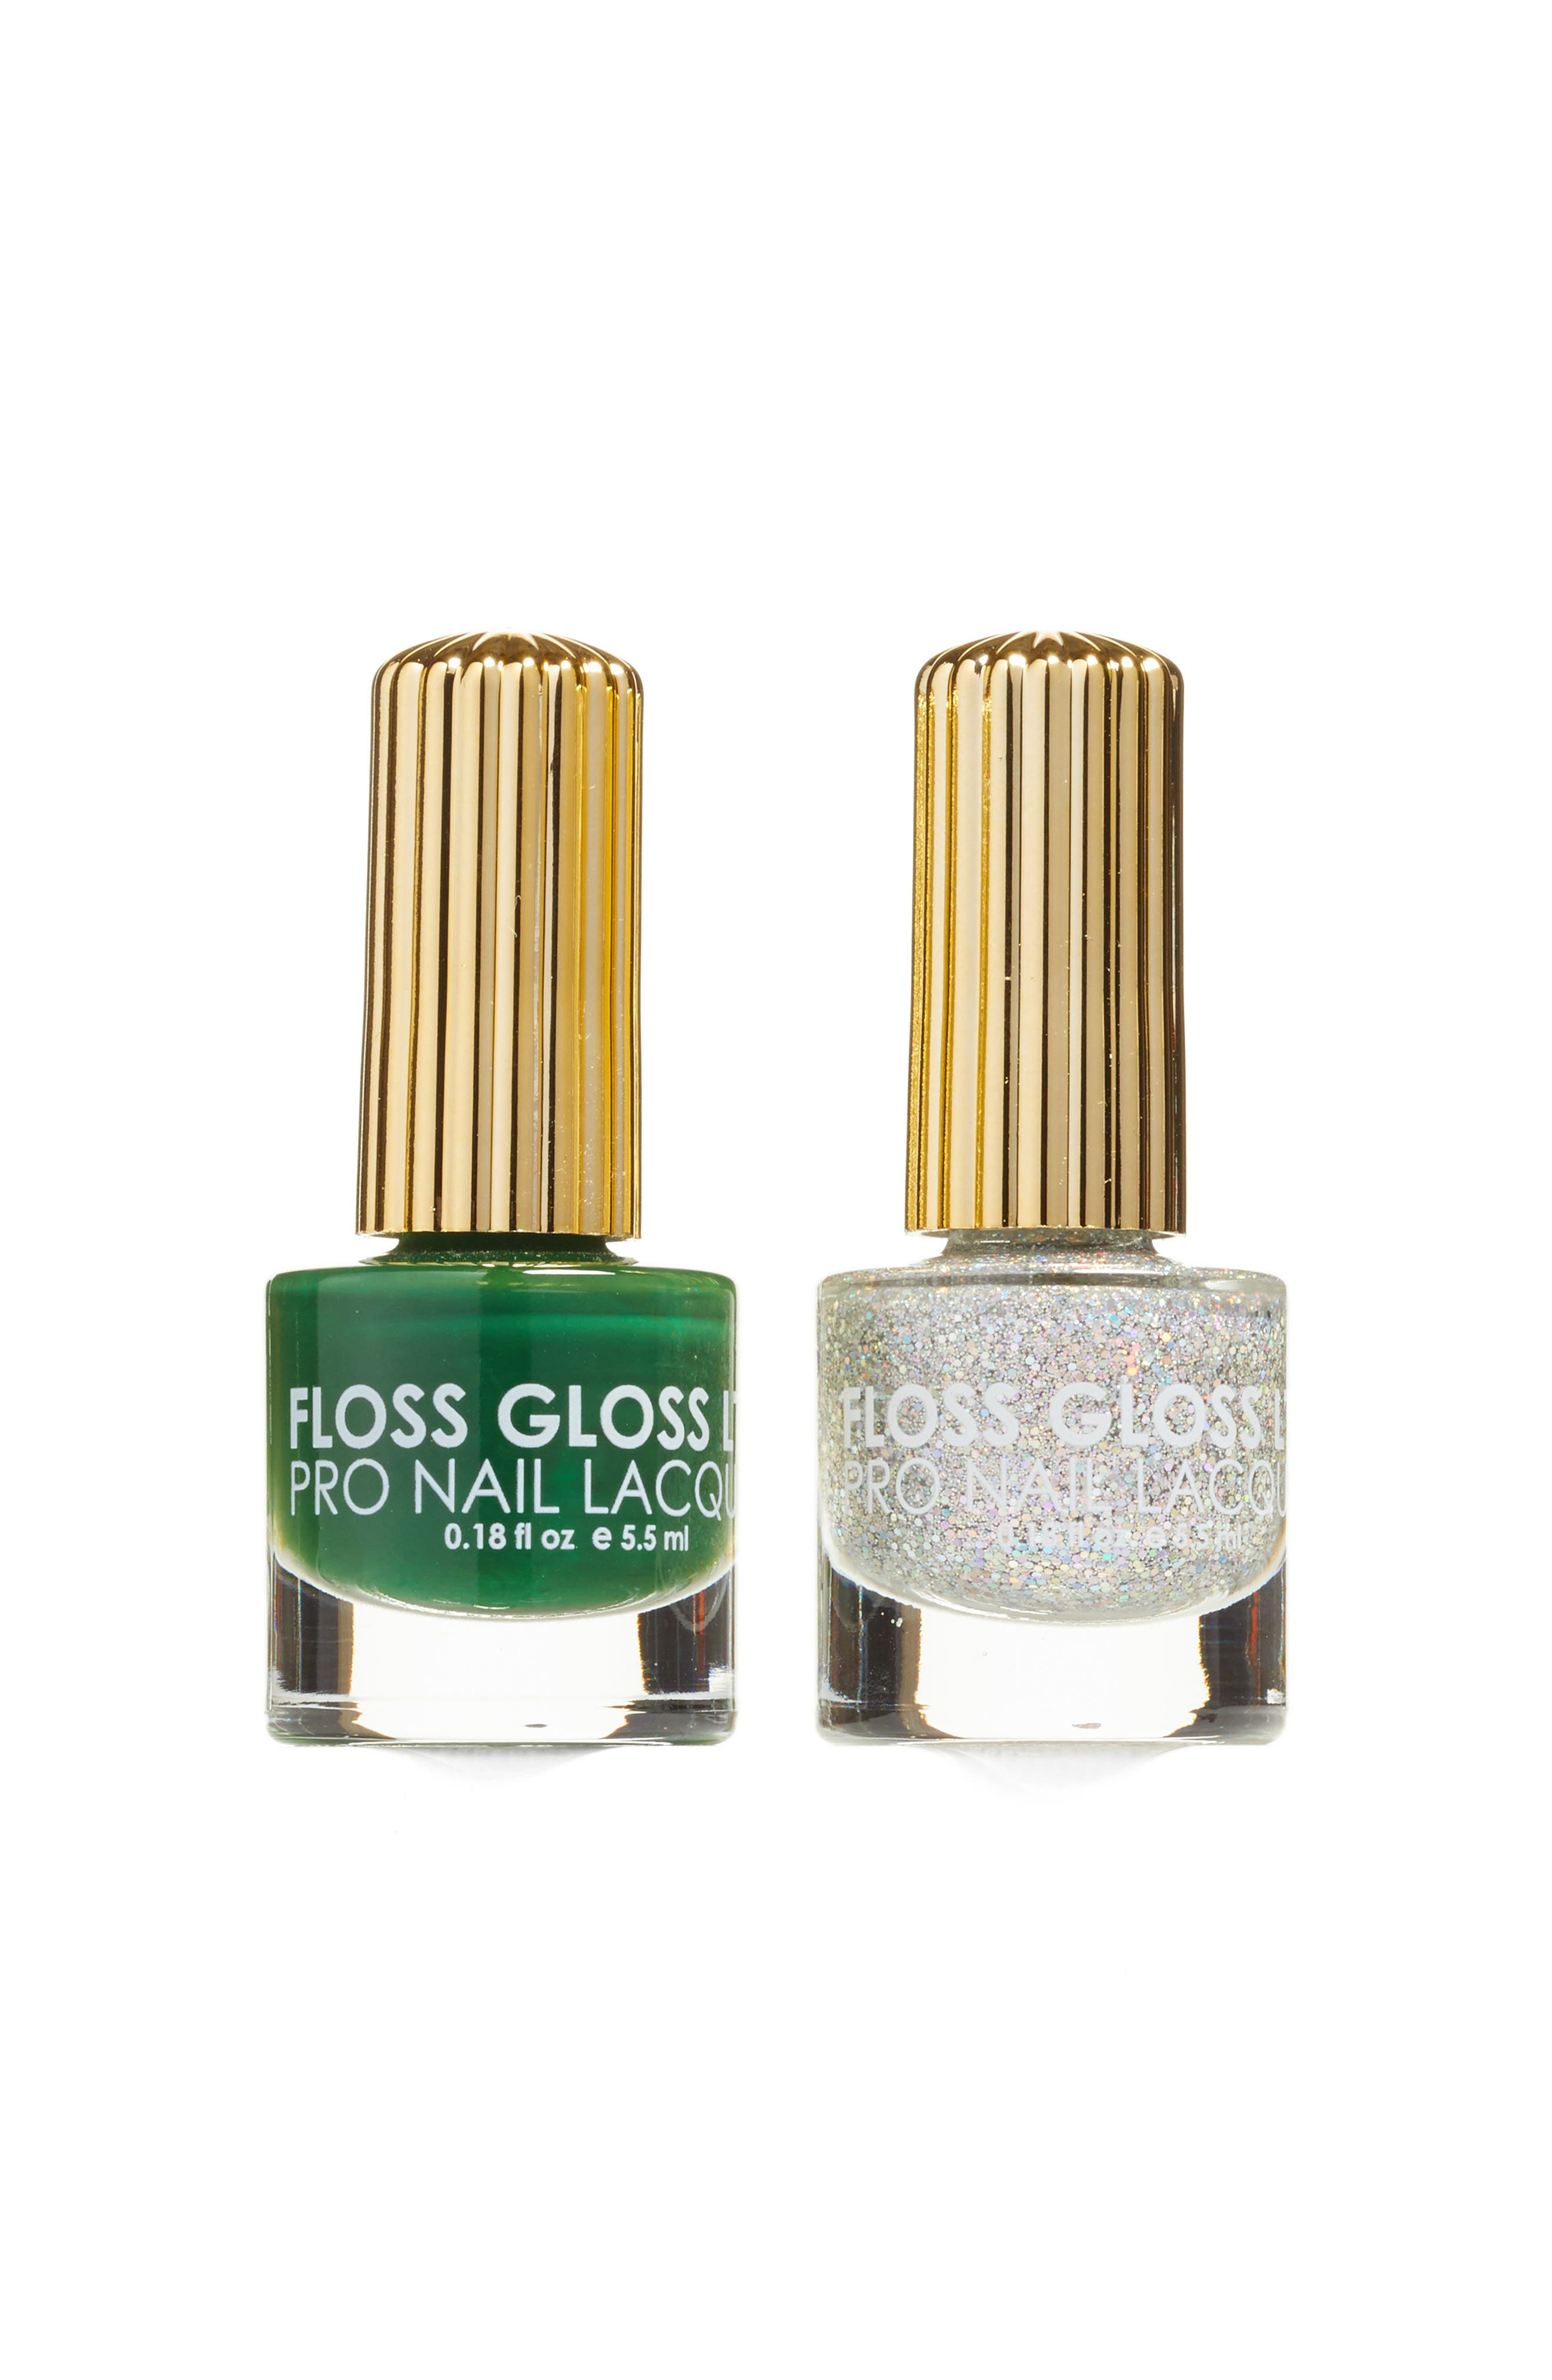 Floss Gloss Dimepiece & Night Palm Set of 2 Nail Lacquers